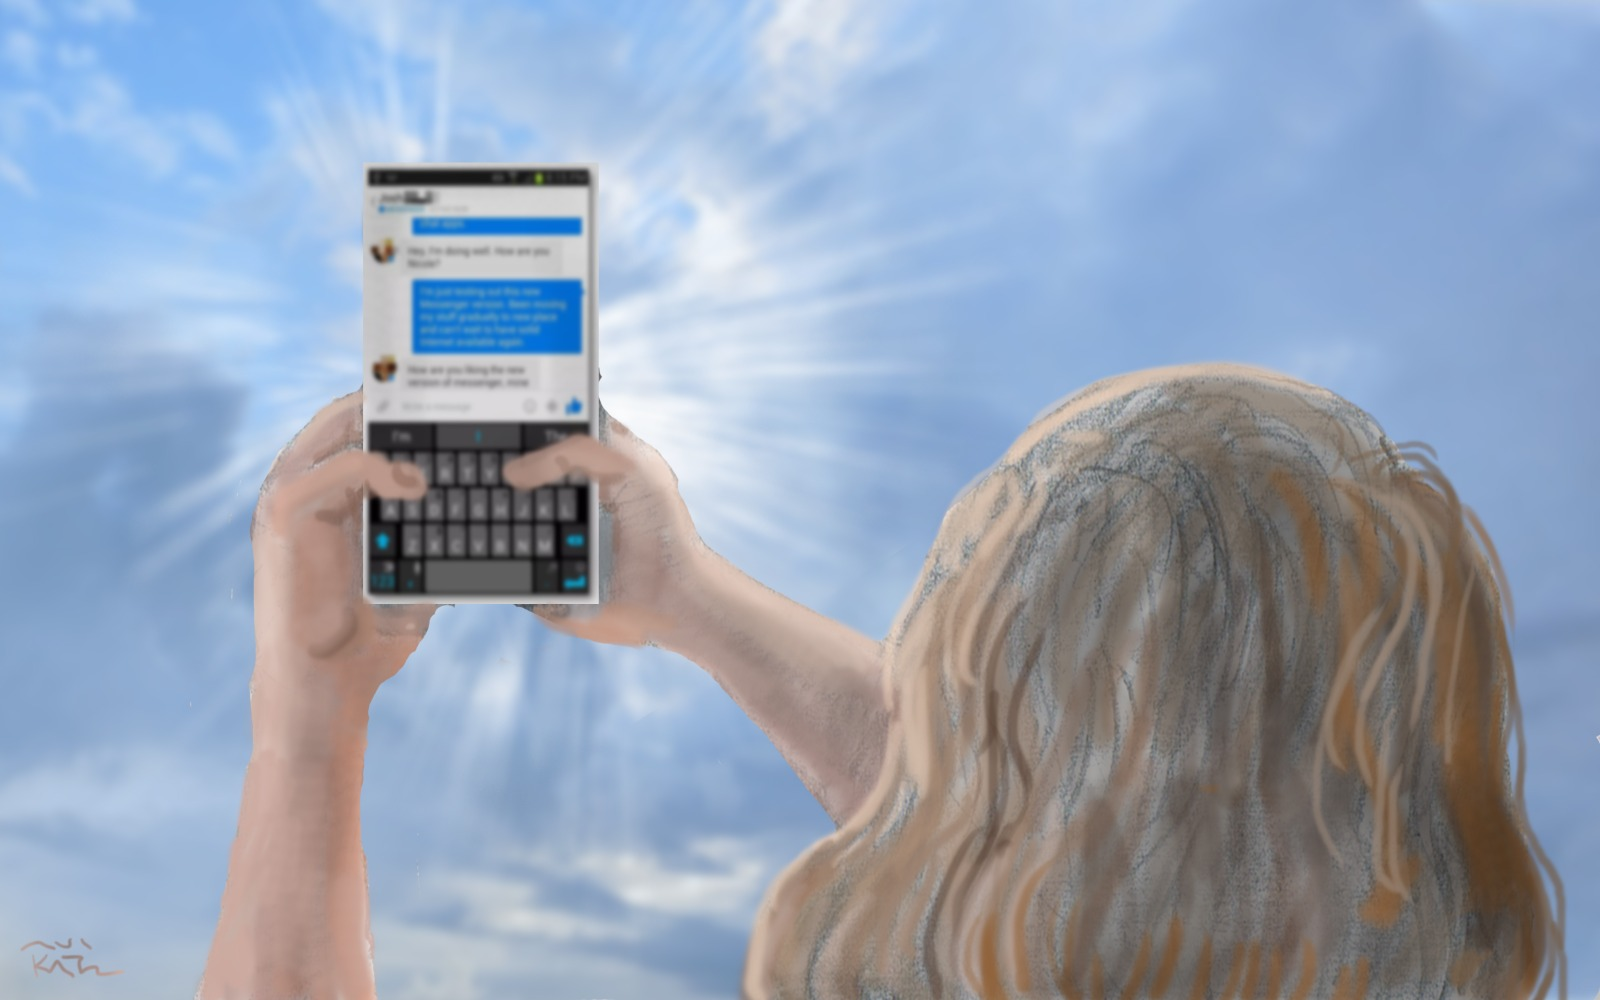 A mother's prayer on the occasion of her daughter's first cell phone